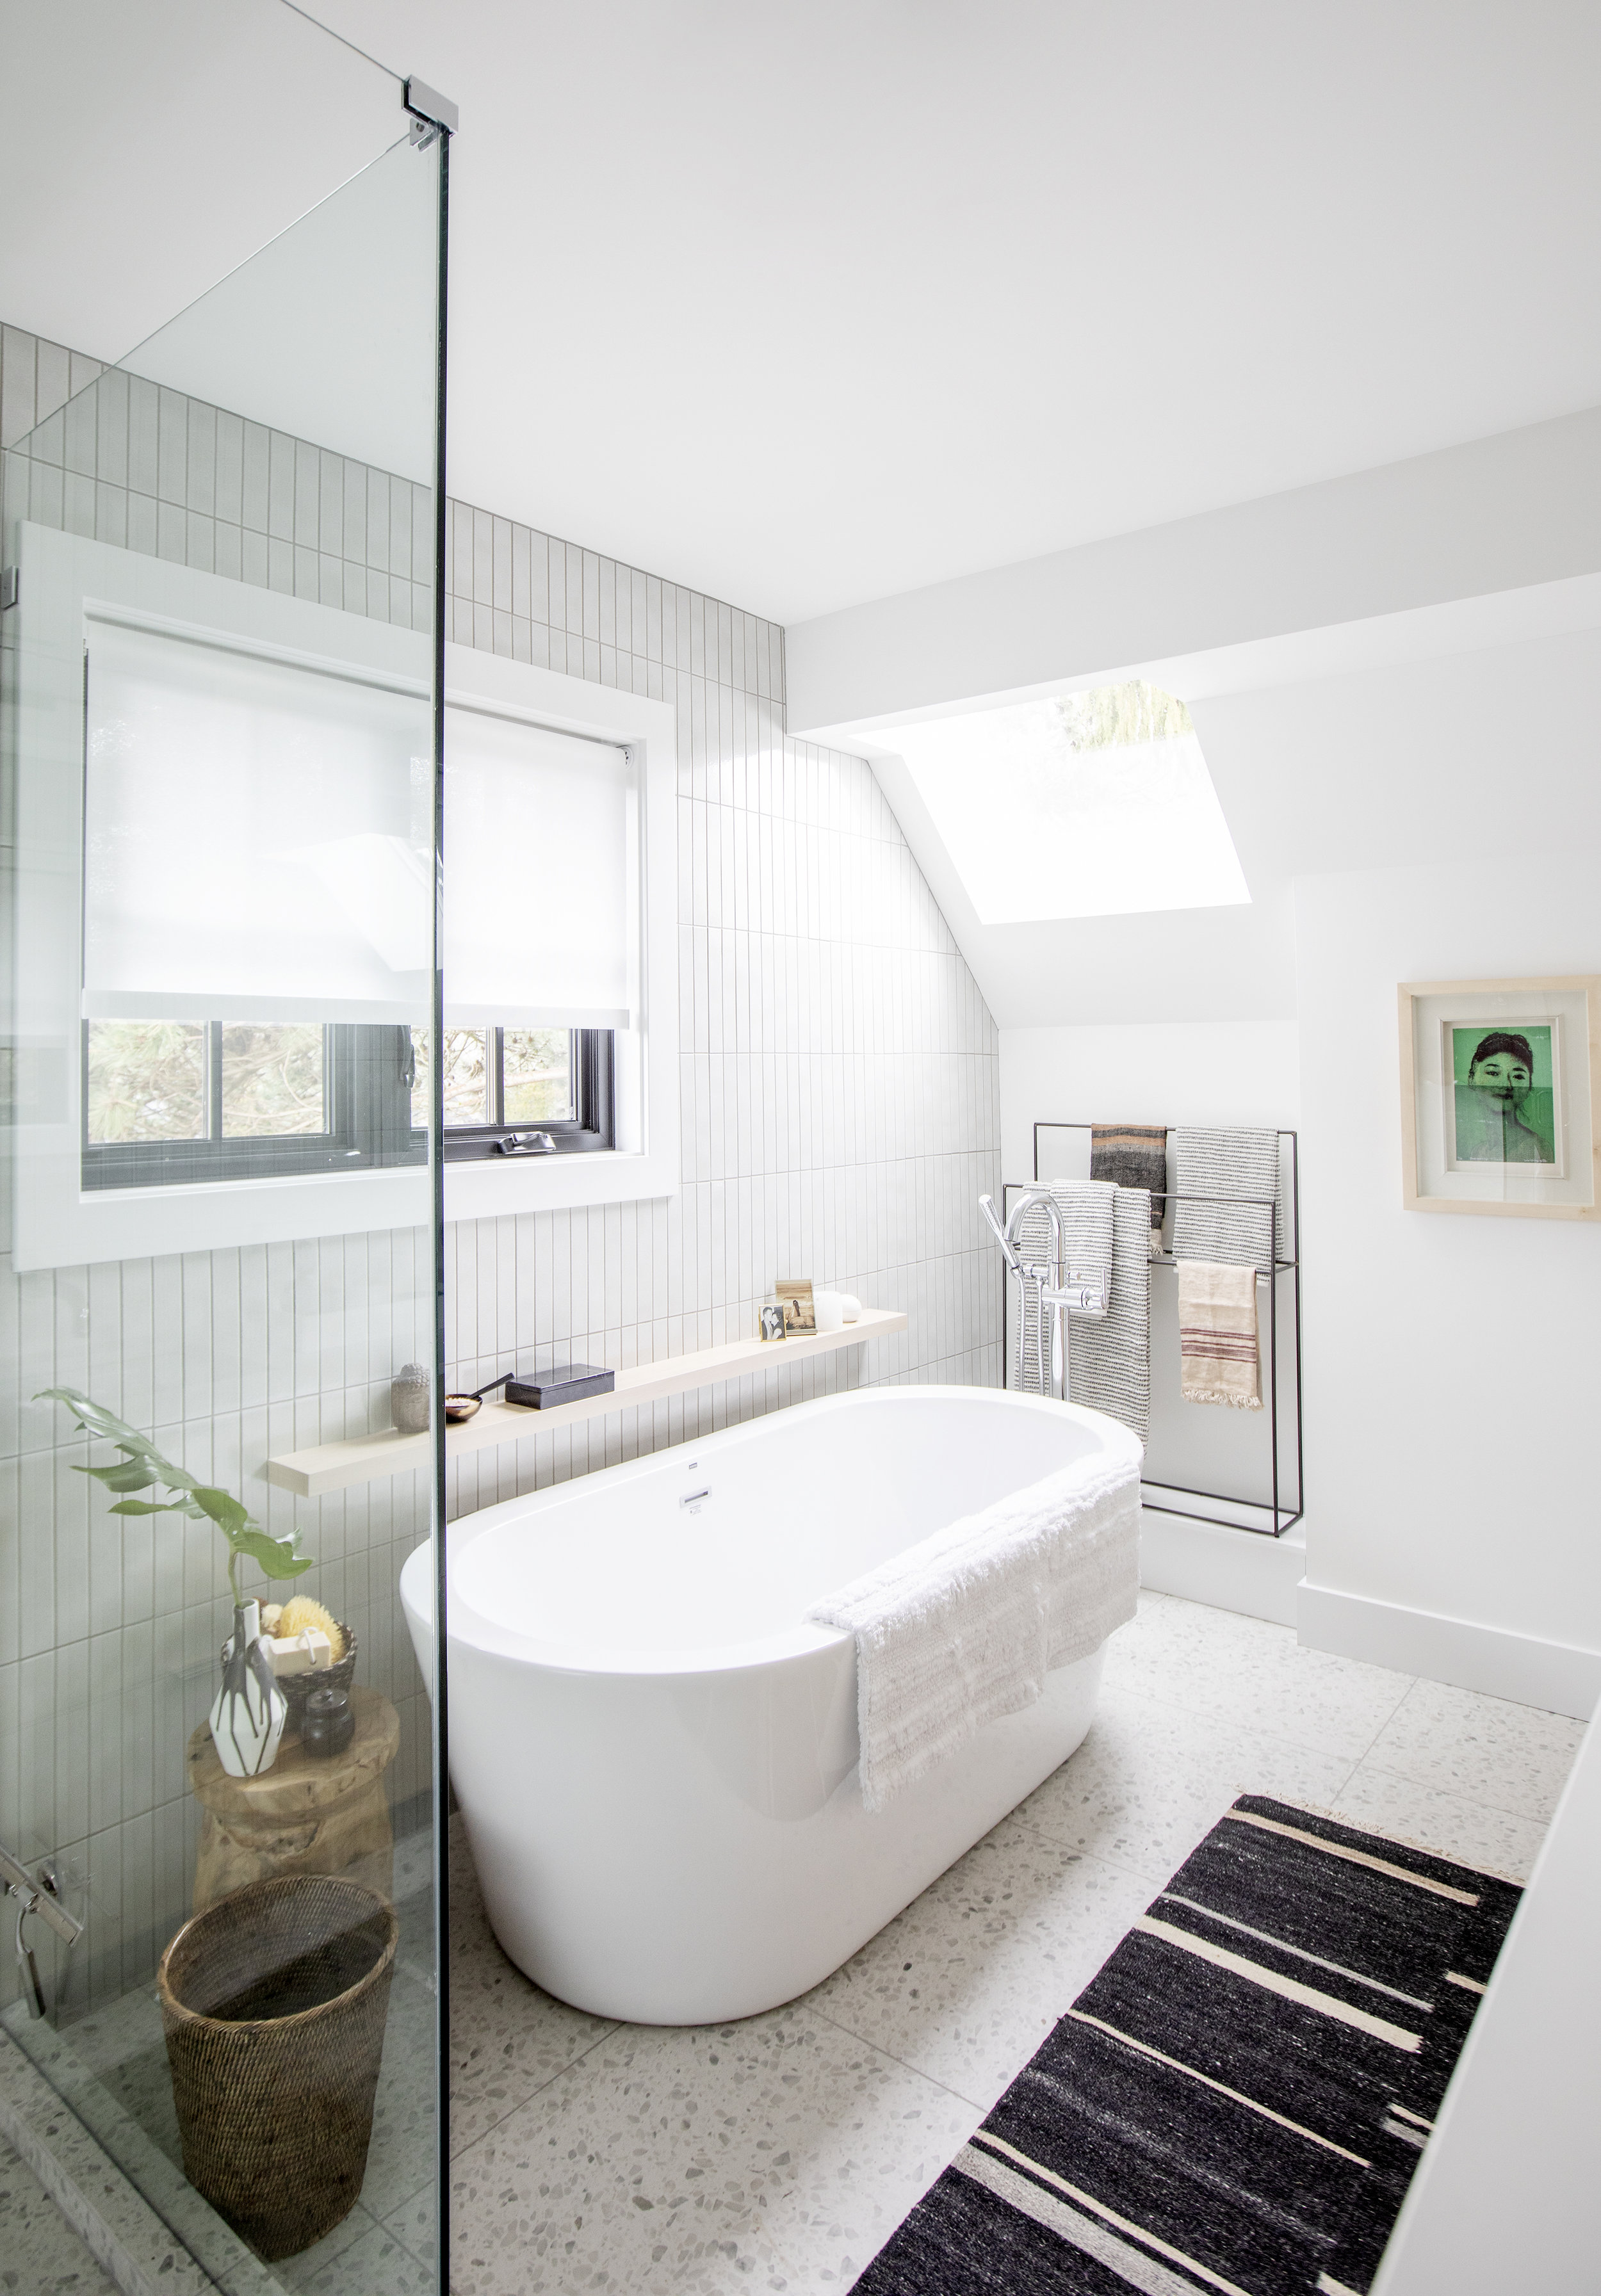 A luxurious soaker tub sits in the middle of the master bathroom at Alderfield Place.